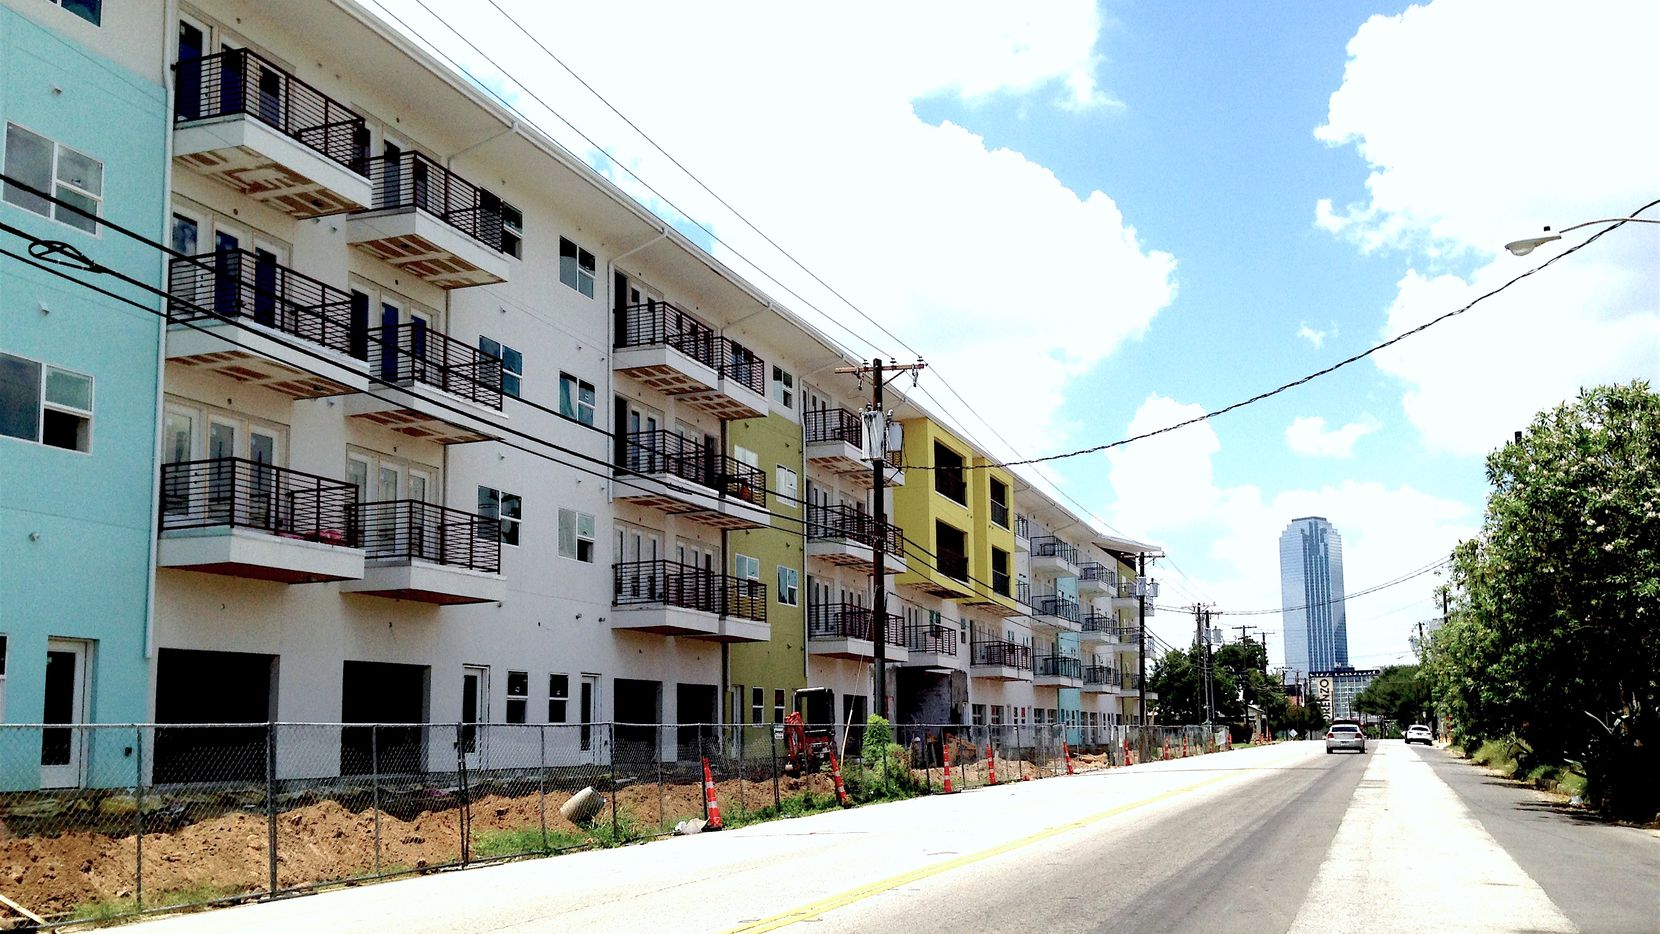 More than 50,000 apartments are being built in North Texas.